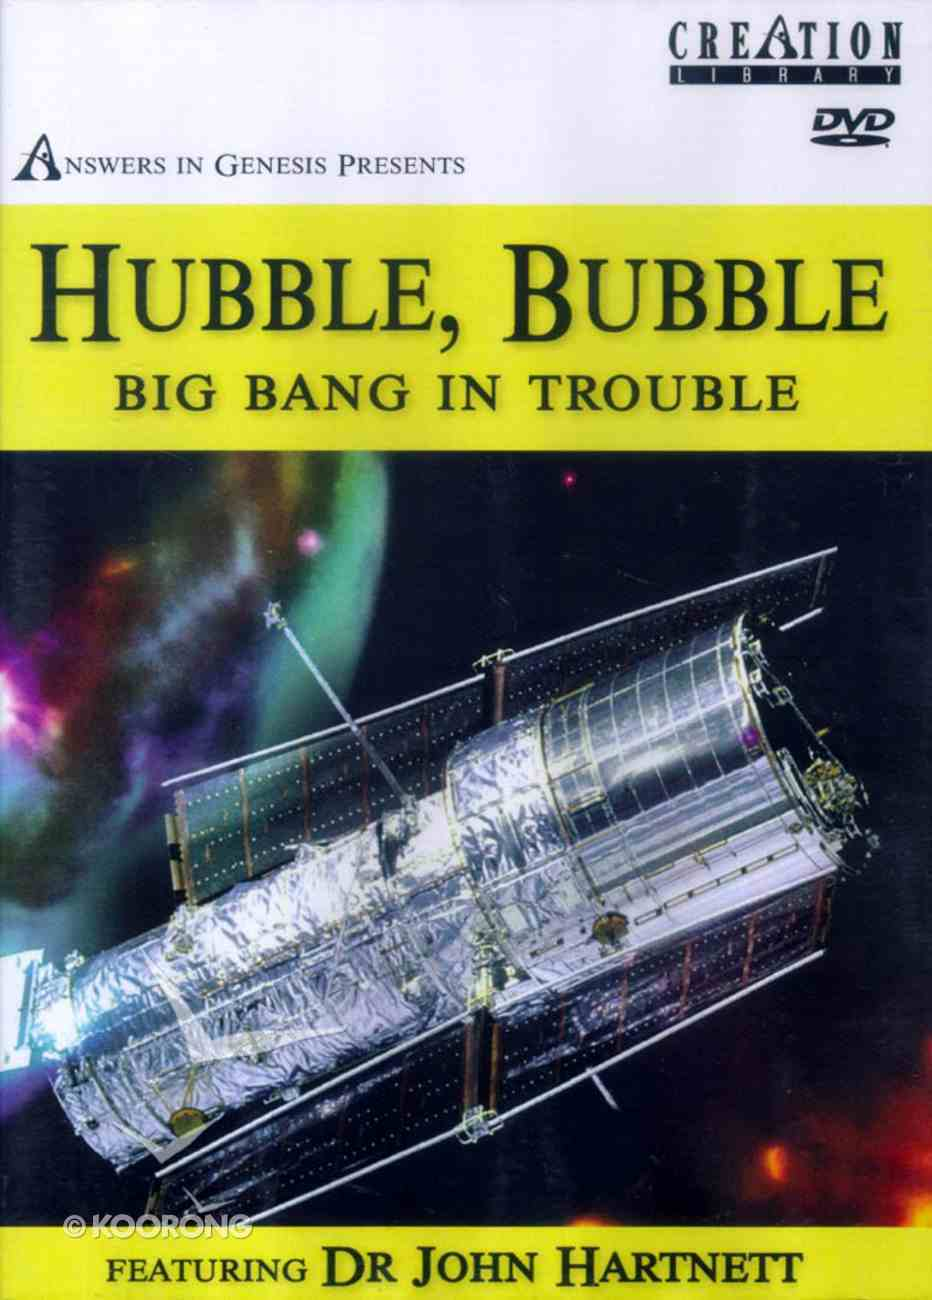 Hubble, Bubble Big Bang in Trouble DVD